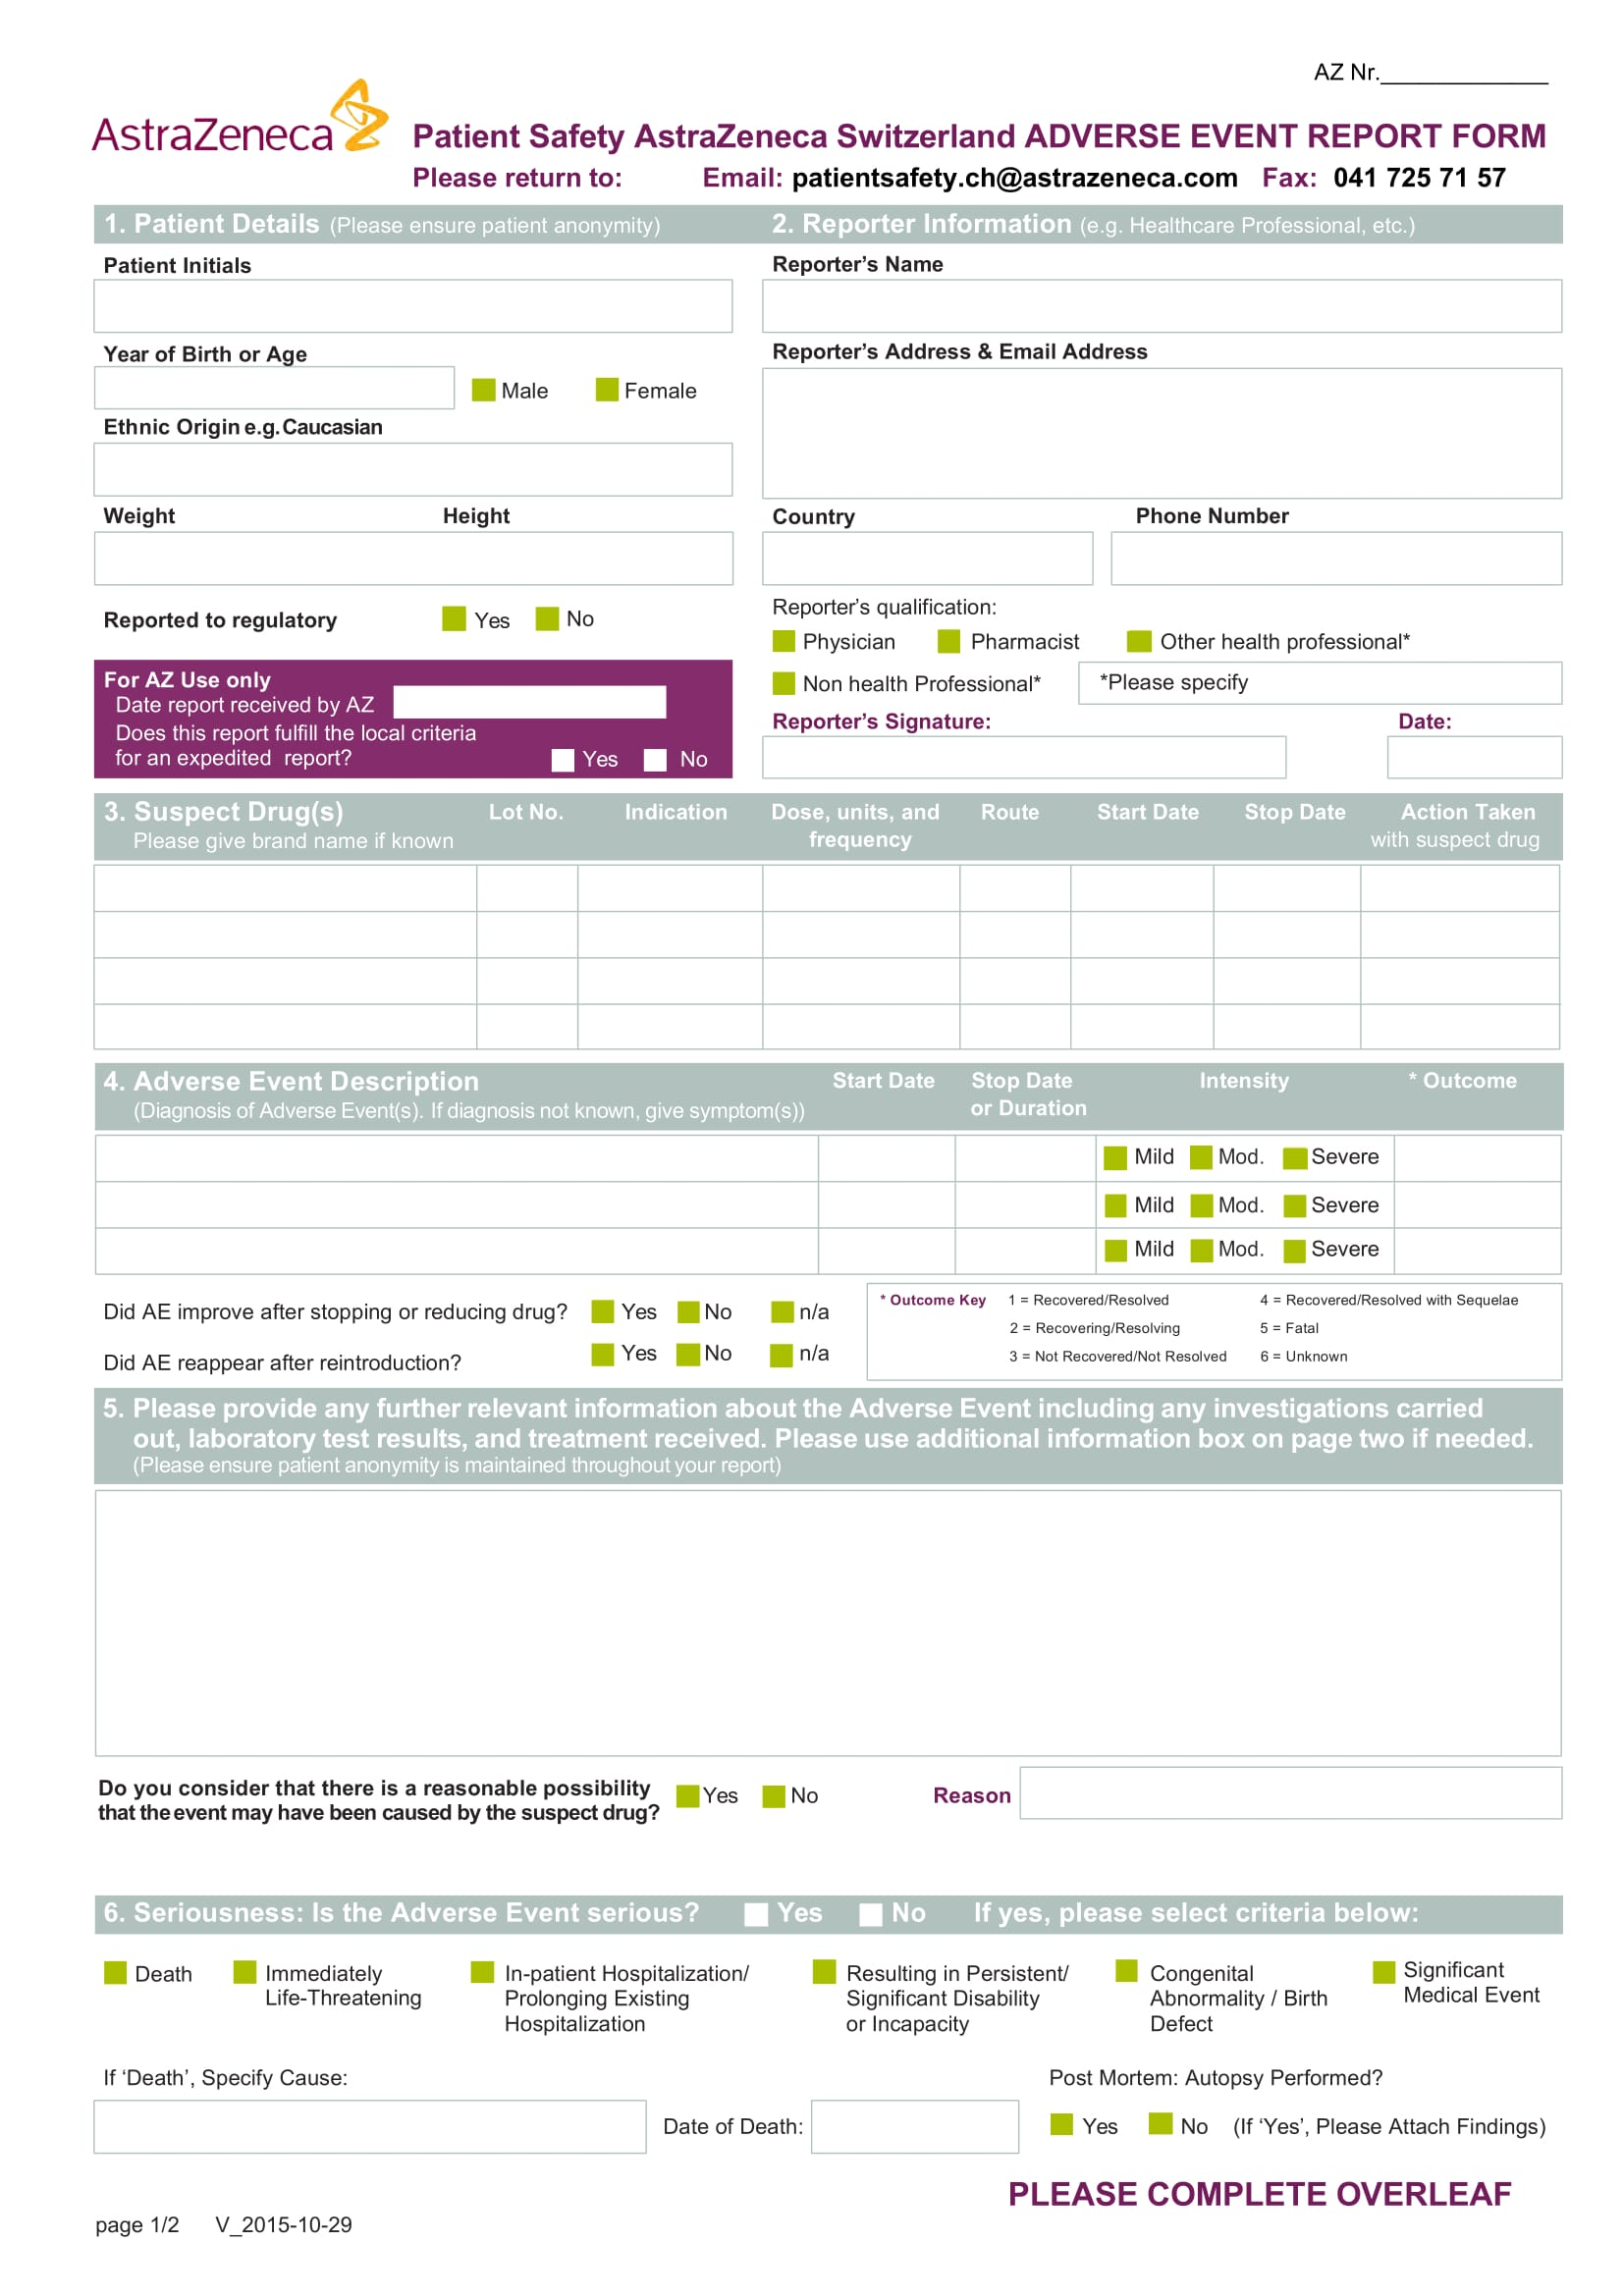 patient's adverse event report form 1